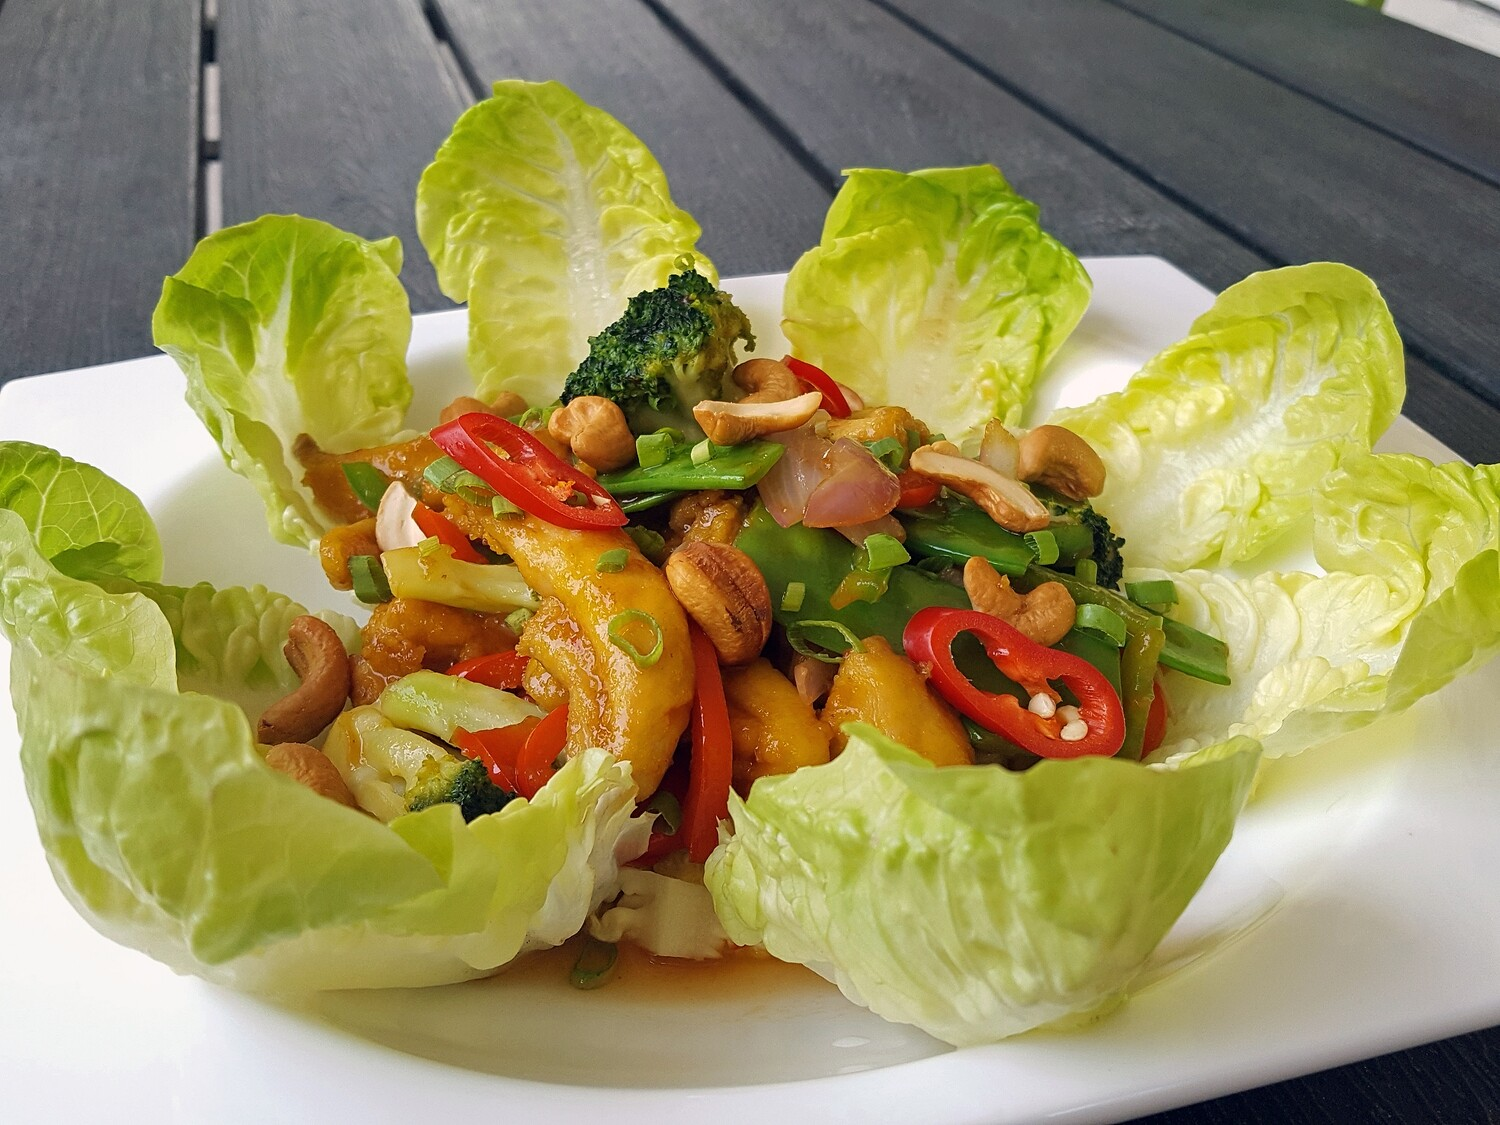 (GA XAO HAT DIEU) Chicken fried with vegetables and cashew nuts